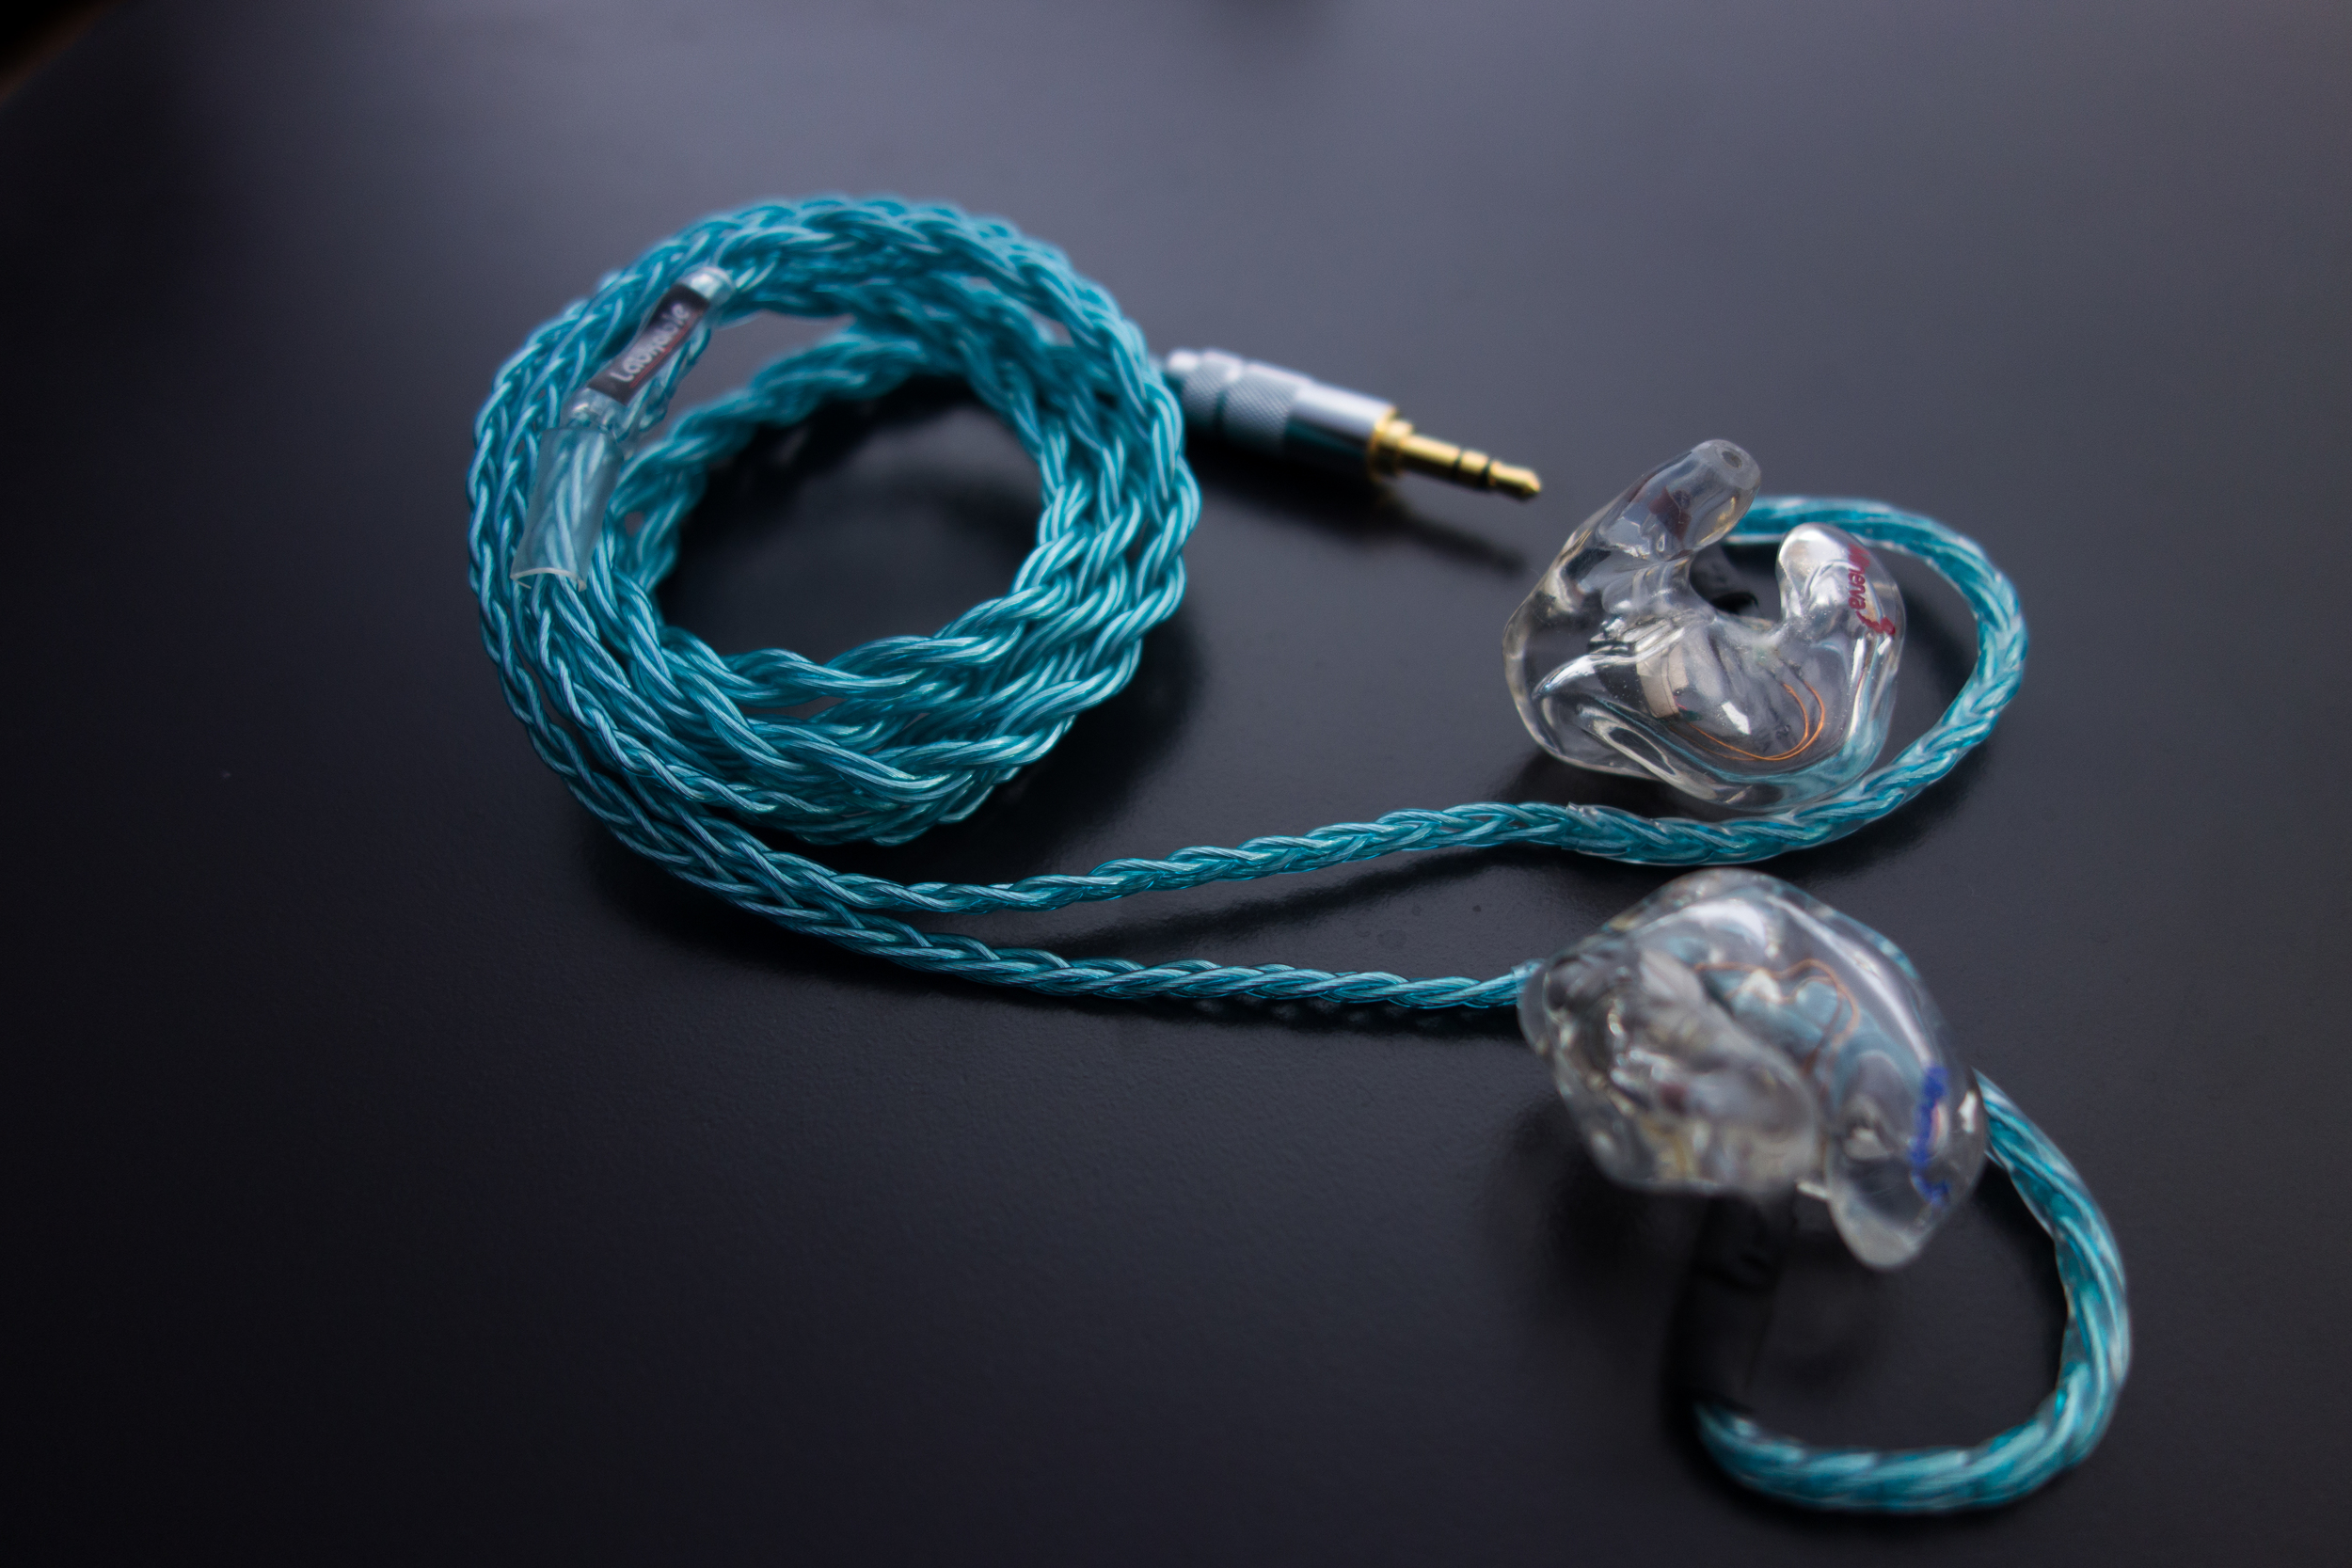 Labkable Blue Horizon - CIEM cable review